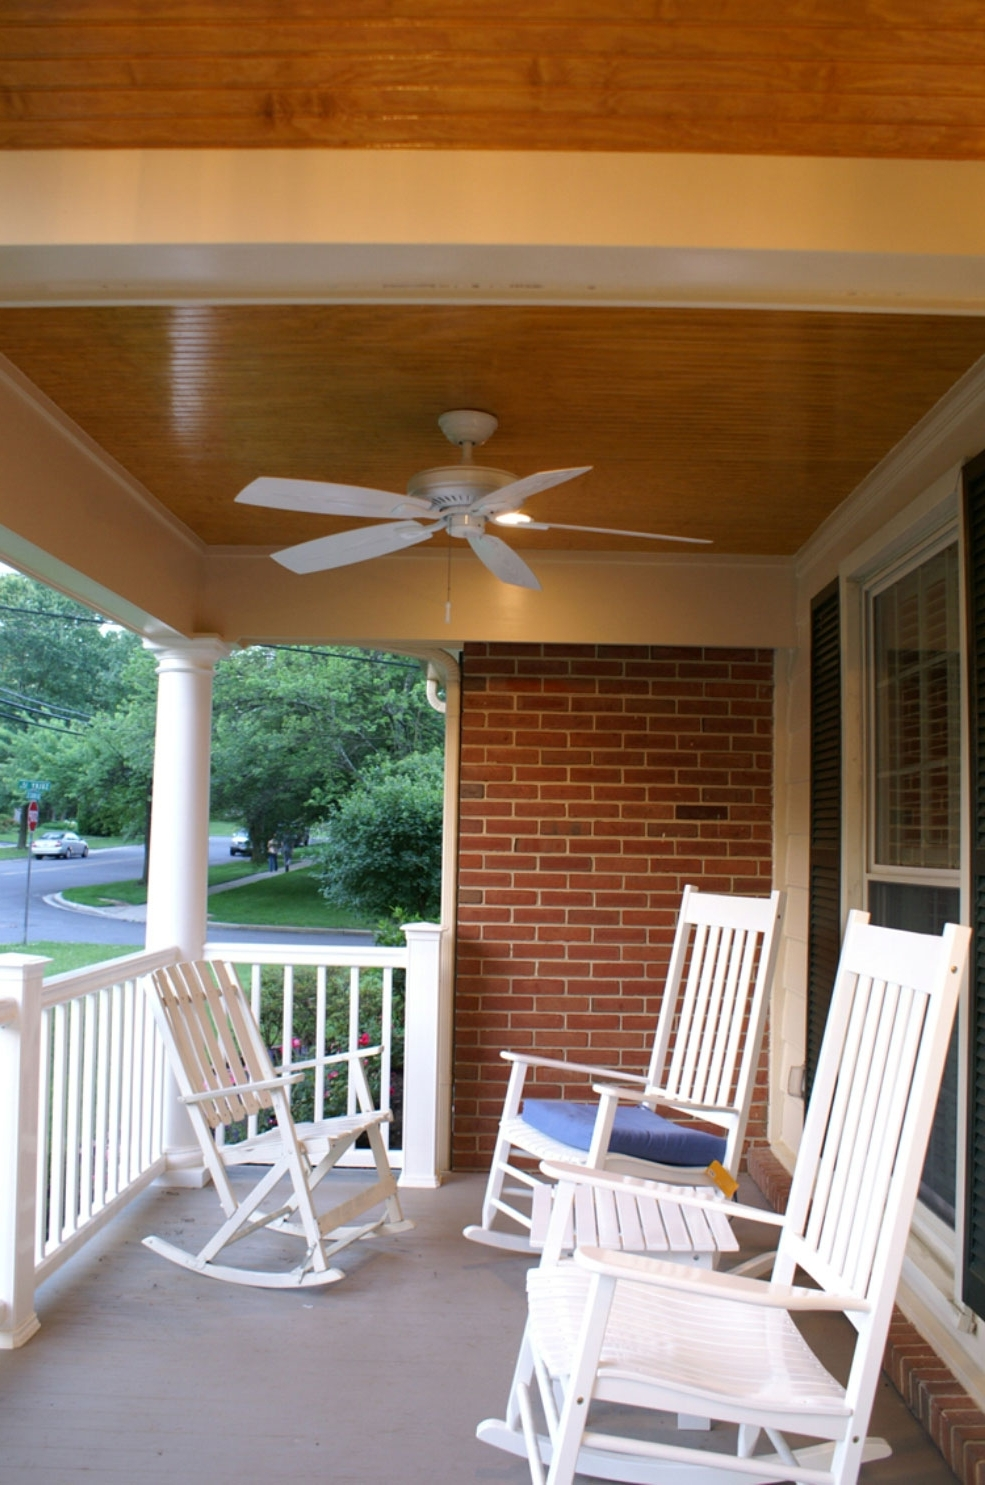 Ceiling: Glamorous Outdoor Ceiling Fans Without Lights Lowes Ceiling Intended For Most Current Outdoor Ceiling Fans For Porches (View 2 of 20)